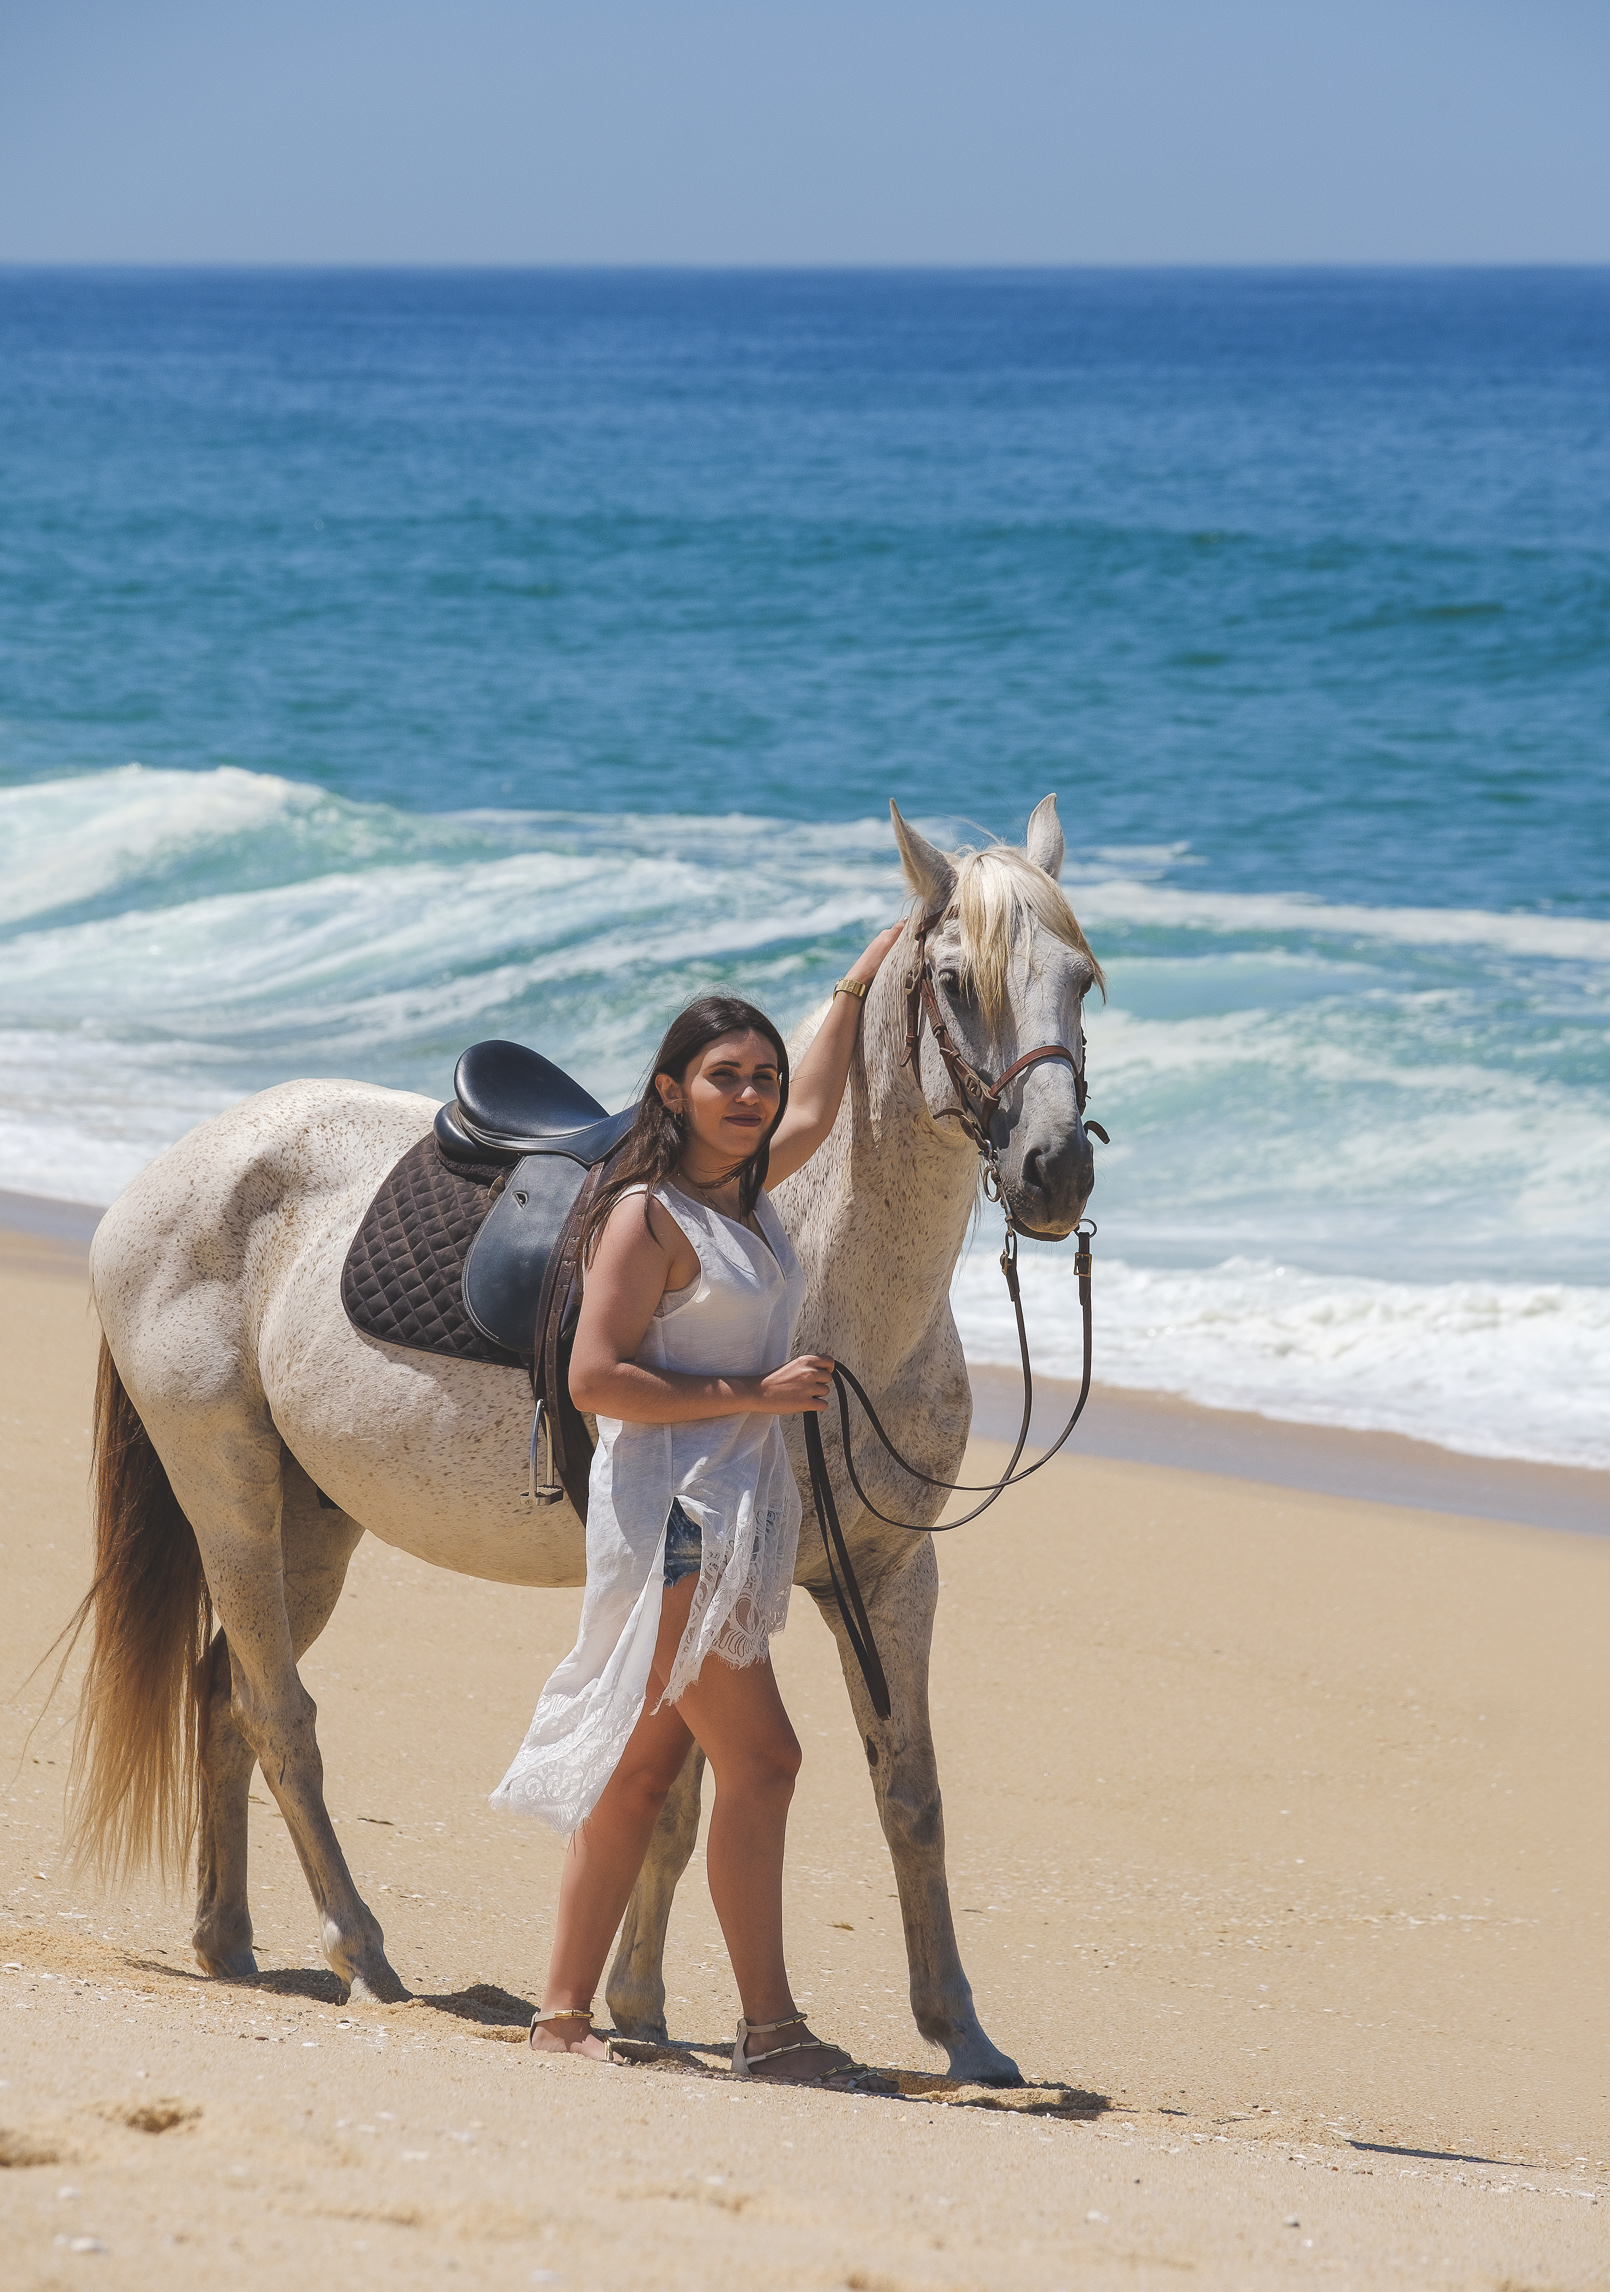 Le Fashionaire white horse ulisses white zara lace silk linen top denim shorts gold nude sandals santa lolla beach sand sun sea blue 4194 EN white horse ulisses white zara lace silk linen top denim shorts gold nude sandals santa lolla beach sand sun sea blue 4194 EN